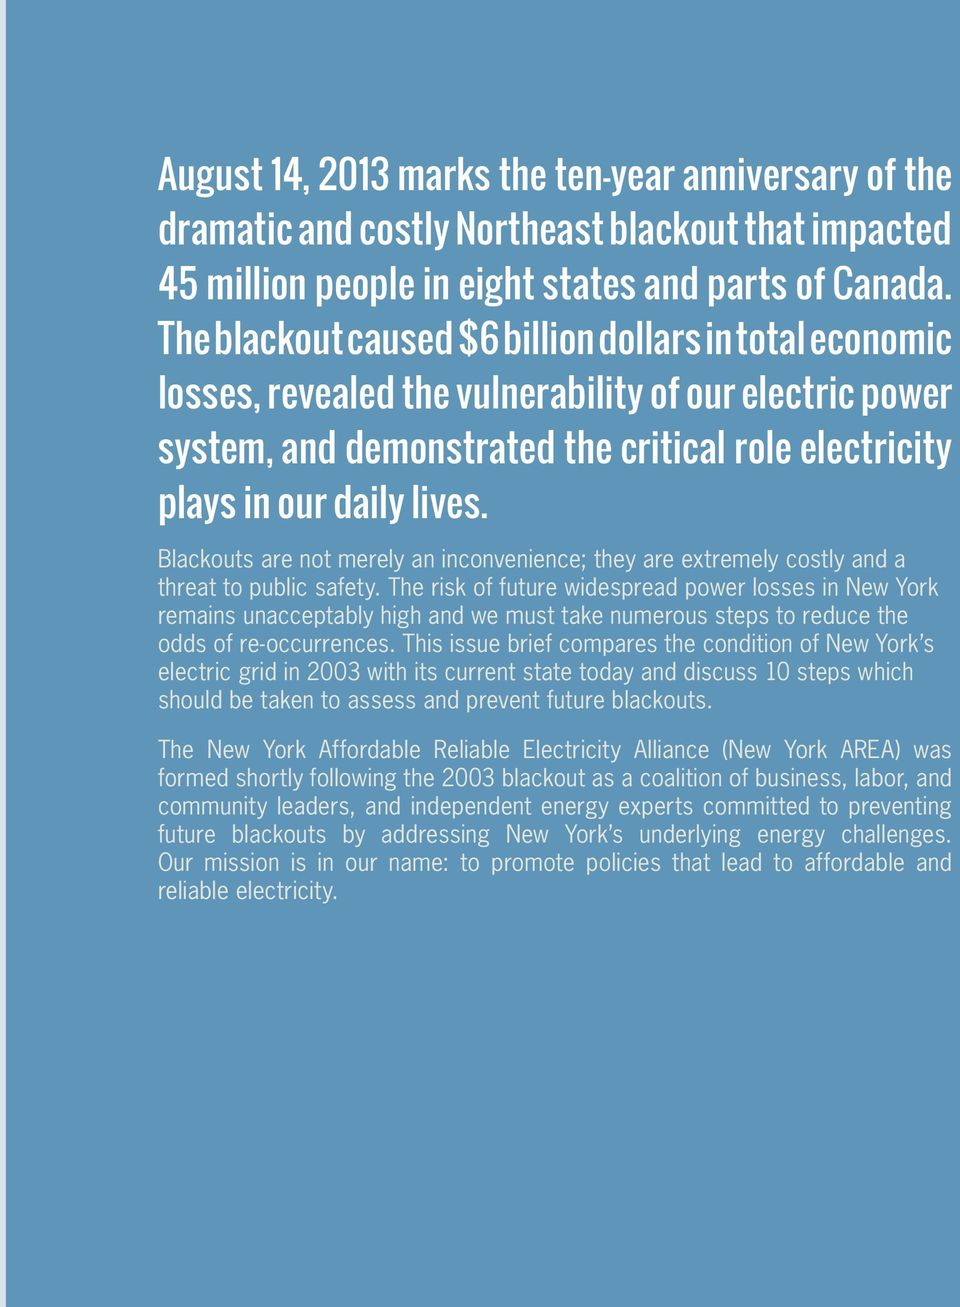 Blackouts are not merely an inconvenience; they are extremely costly and a threat to public safety.